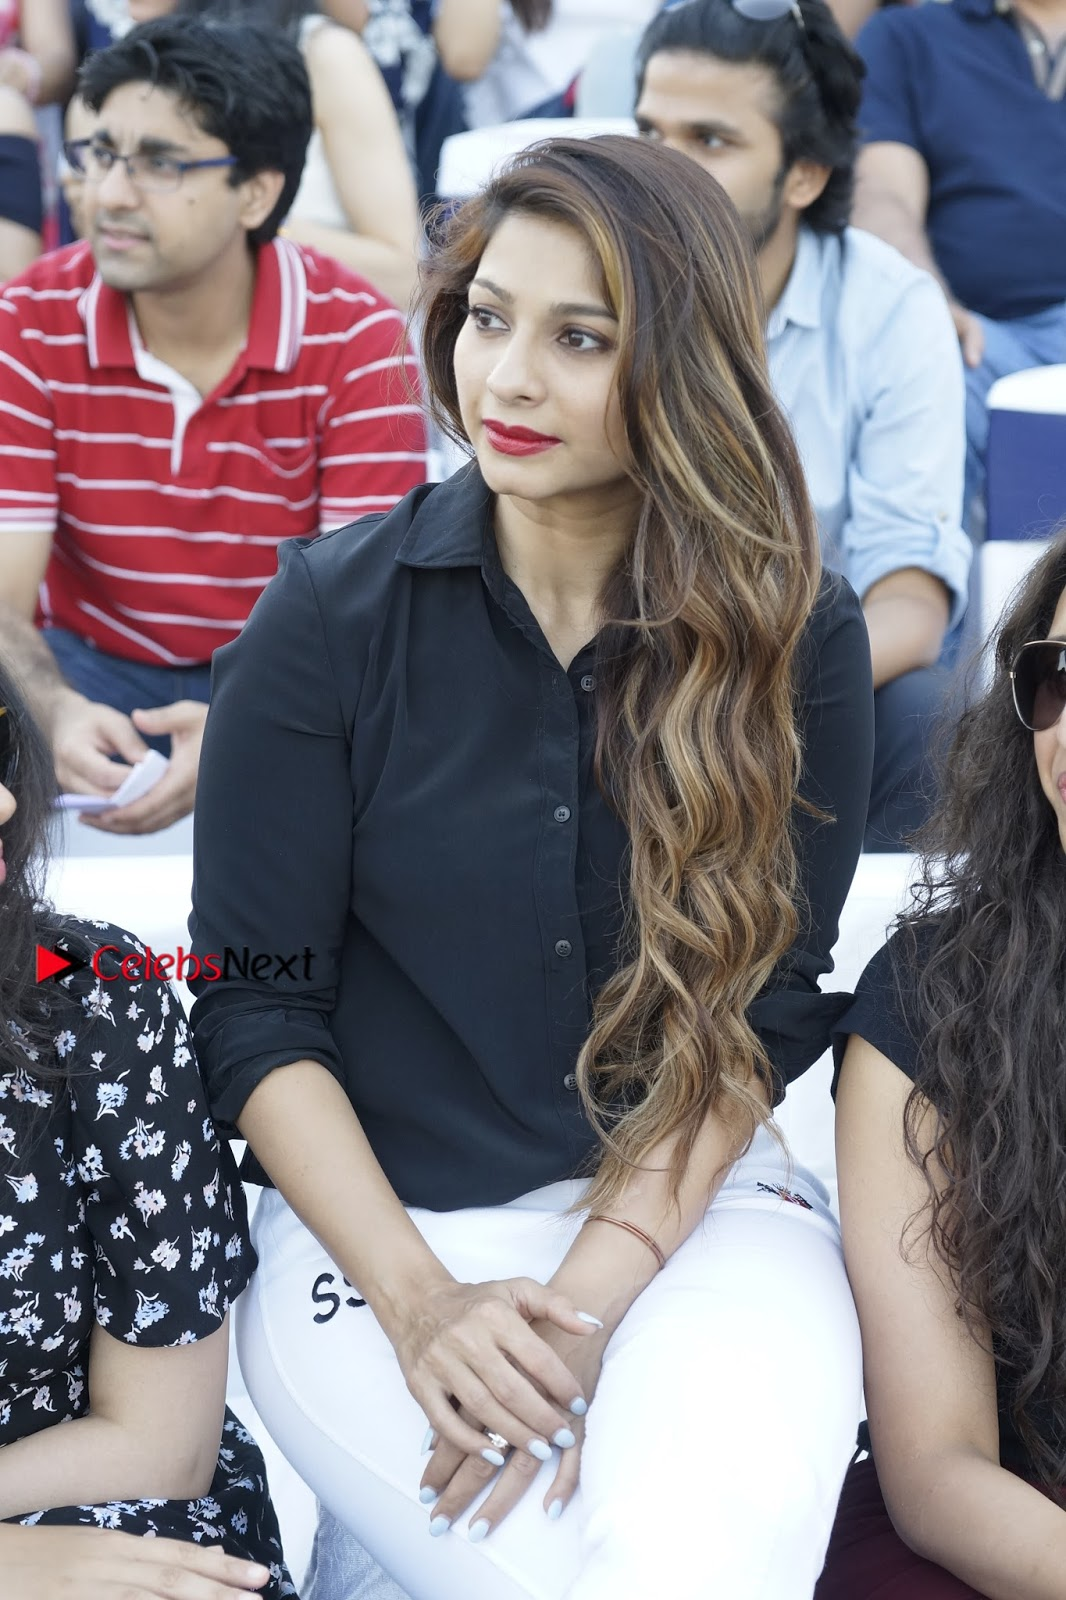 Anusha Dhandekar, Tanisha Mukherjee, Kim Sharma and others at Amateur Riders' Club - Mumbai Polo Season